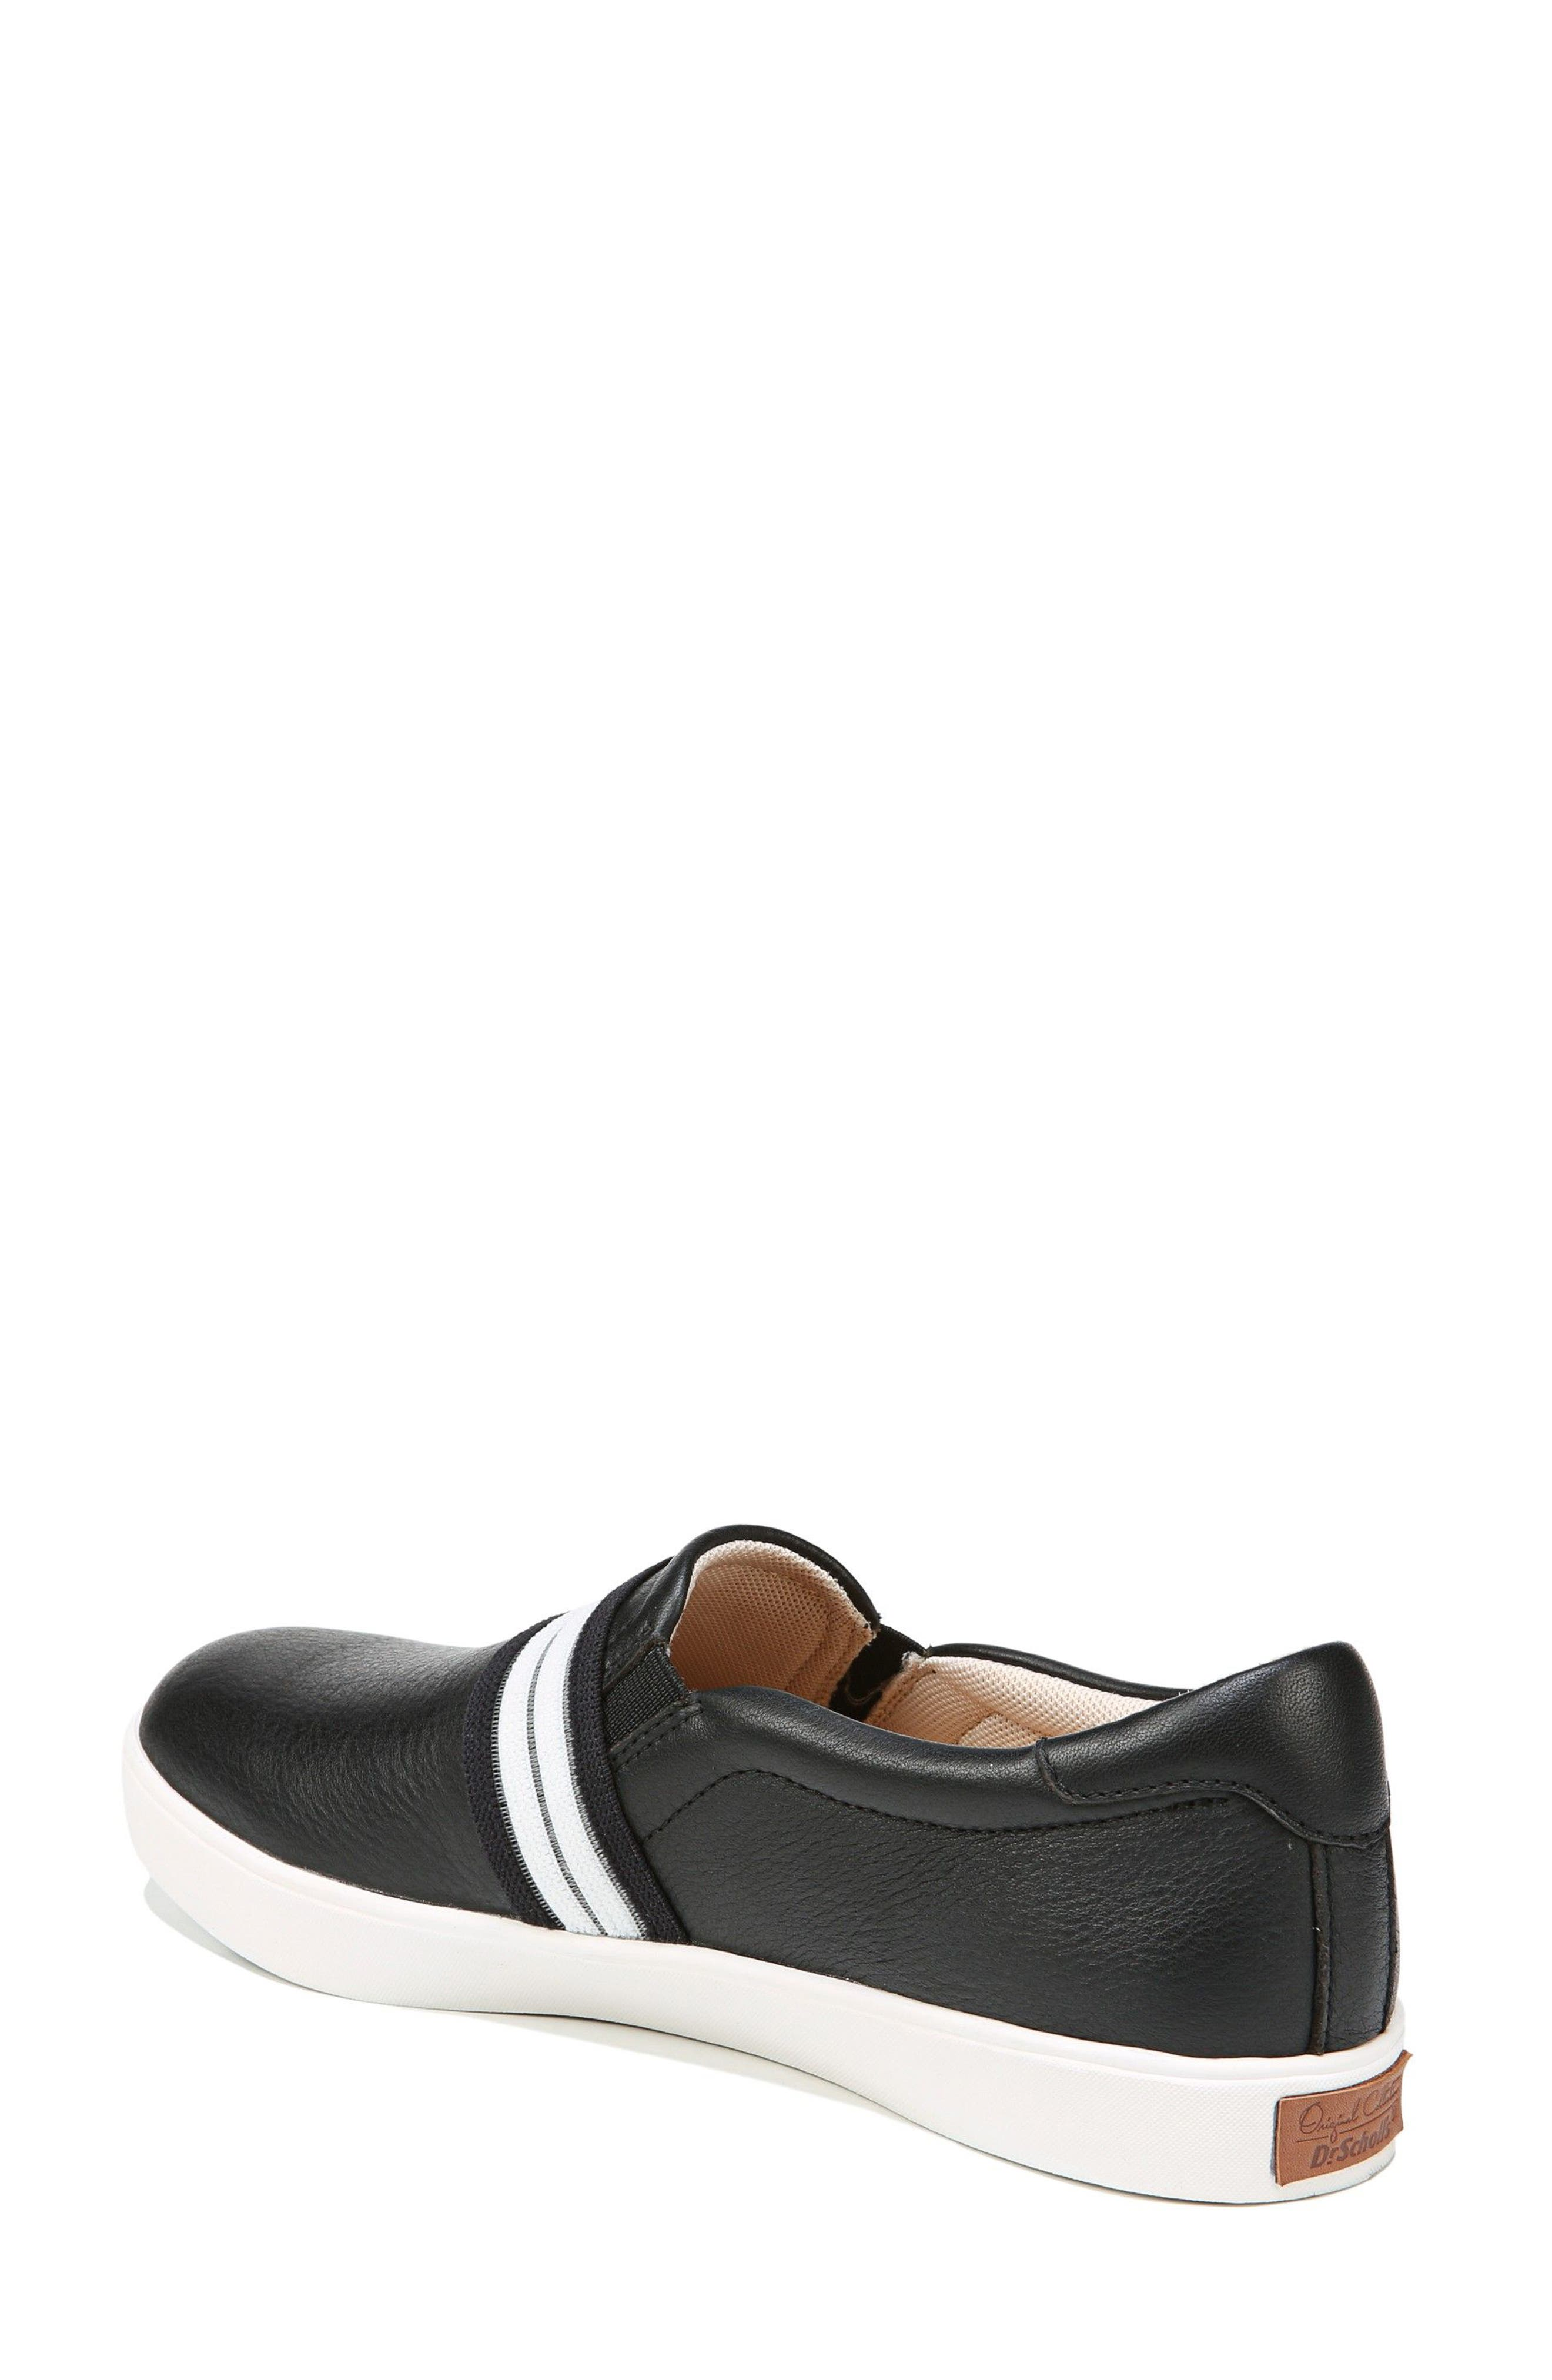 Scout Slip-On Sneaker,                             Alternate thumbnail 2, color,                             BLACK LEATHER 2